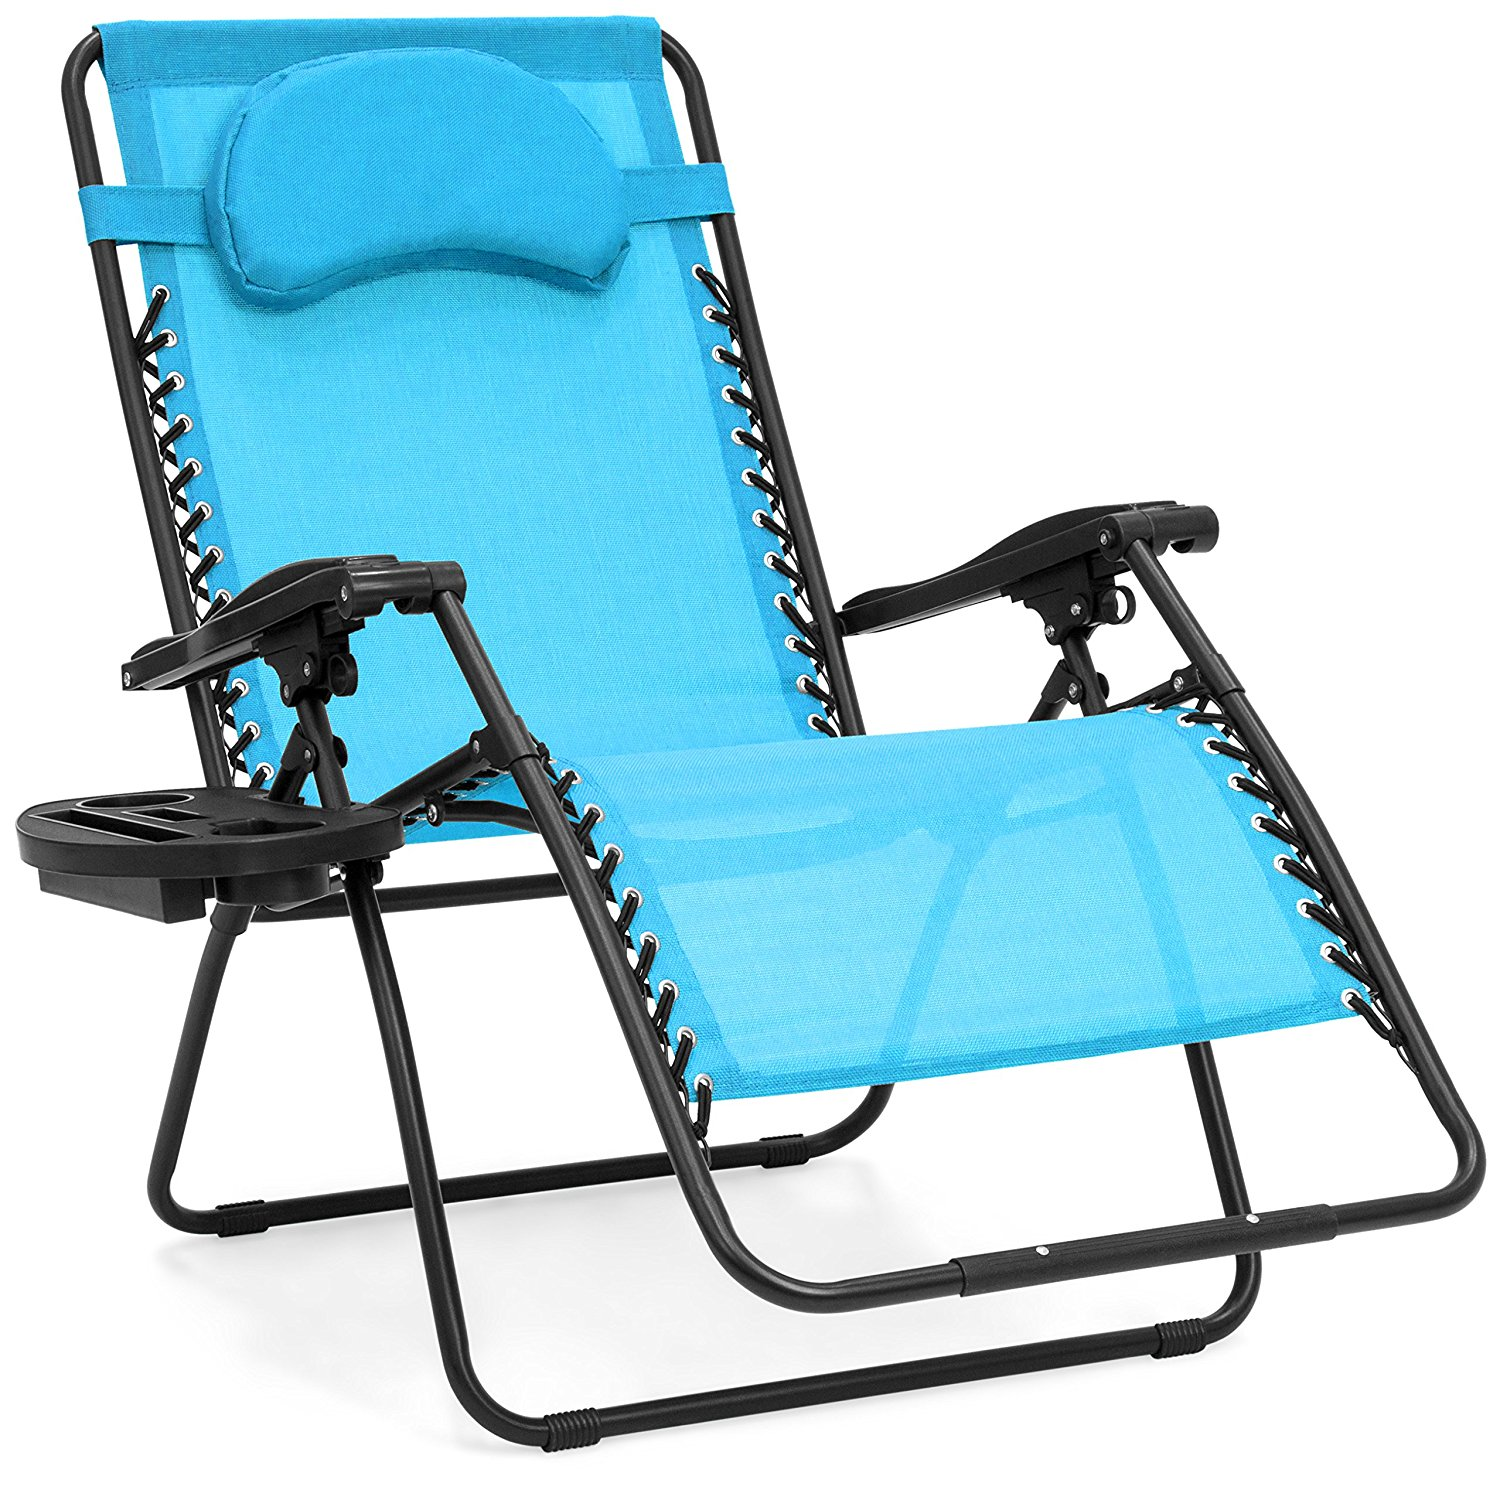 Best Choice Products Oversized Zero Gravity Outdoor Reclining Lounge Patio Chair w/Cup Holder - Blue